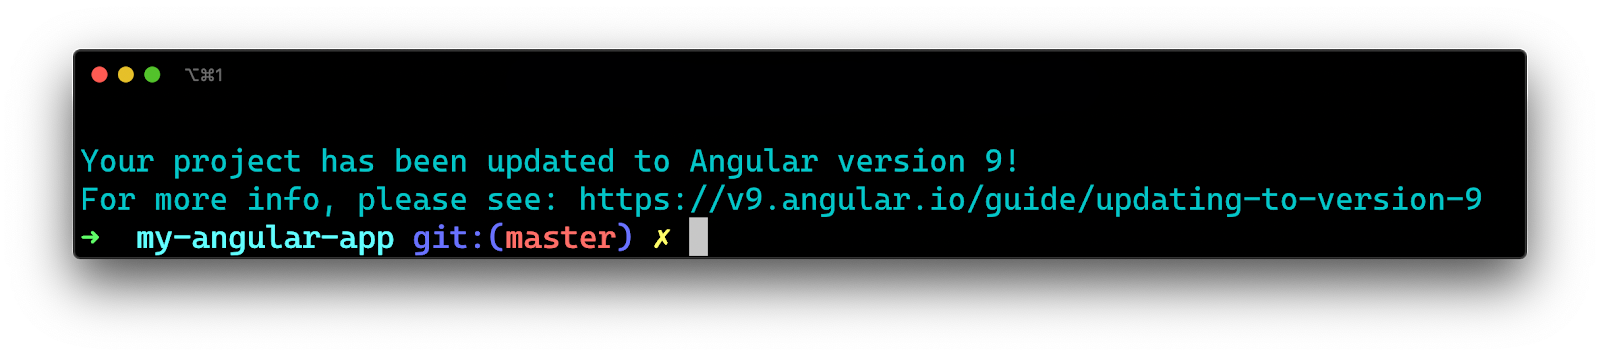 Terminal - Updating to Angular 9 confirmation